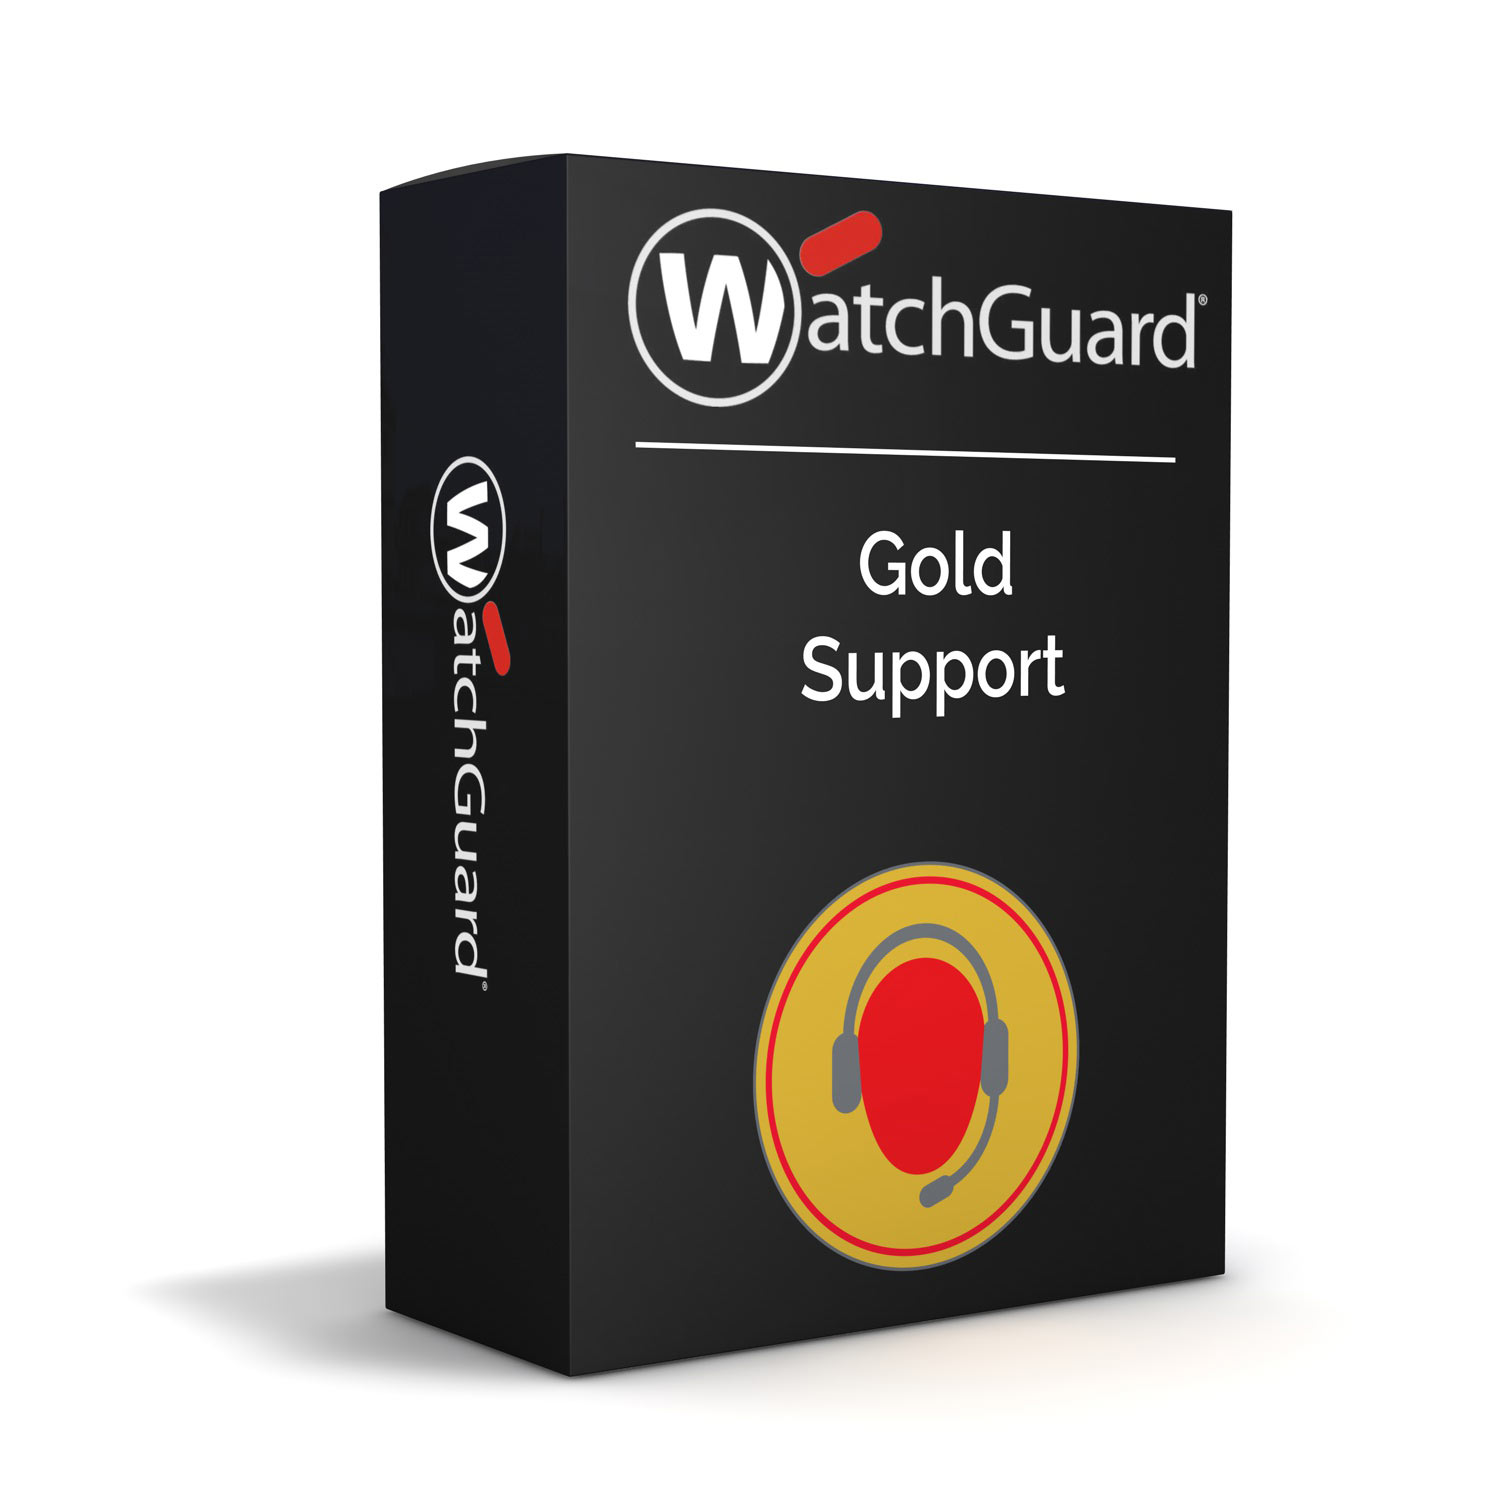 WatchGuard Gold Support Renewal/Upgrade 1-yr for Firebox T15